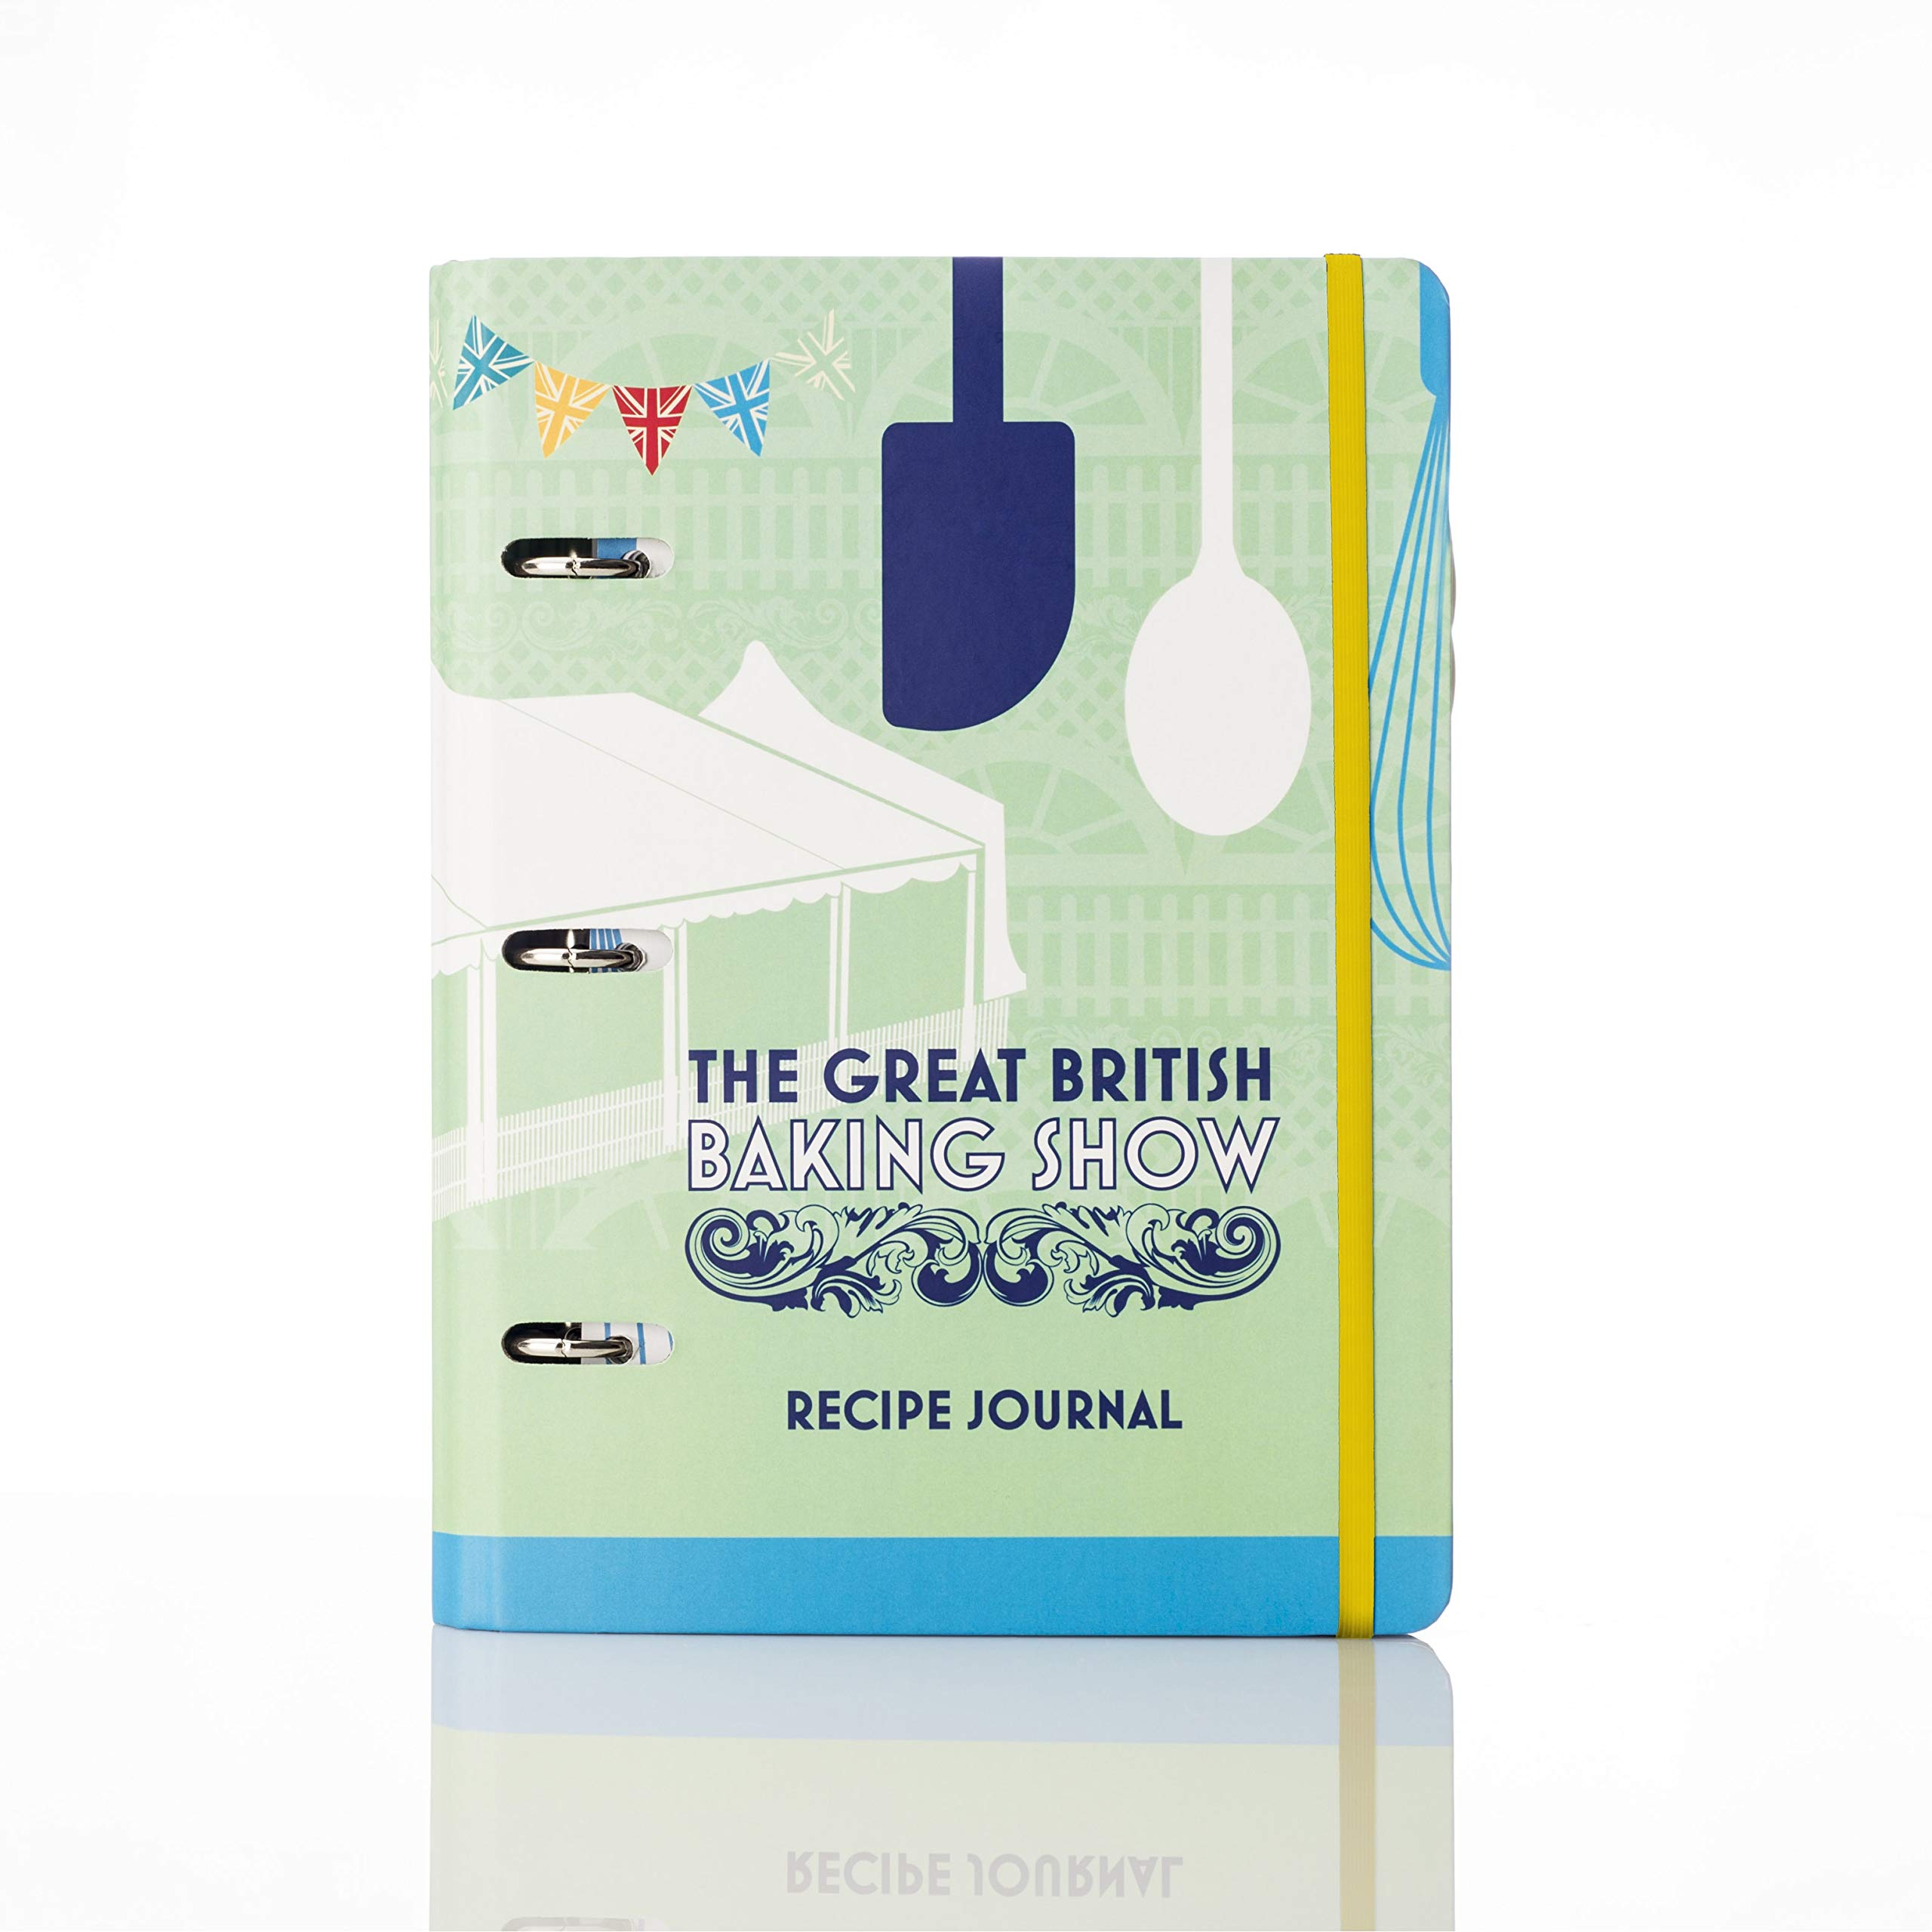 Conquest Journals The Great British Baking Show (Great British Bake Off) Recipe Journal binder, 7 1/4''x9'', 3 Ring Mini Euro Binder, 6 Baking Show Recipes, Pocket Dividers, Blank Recipe Pages by CON*QUEST